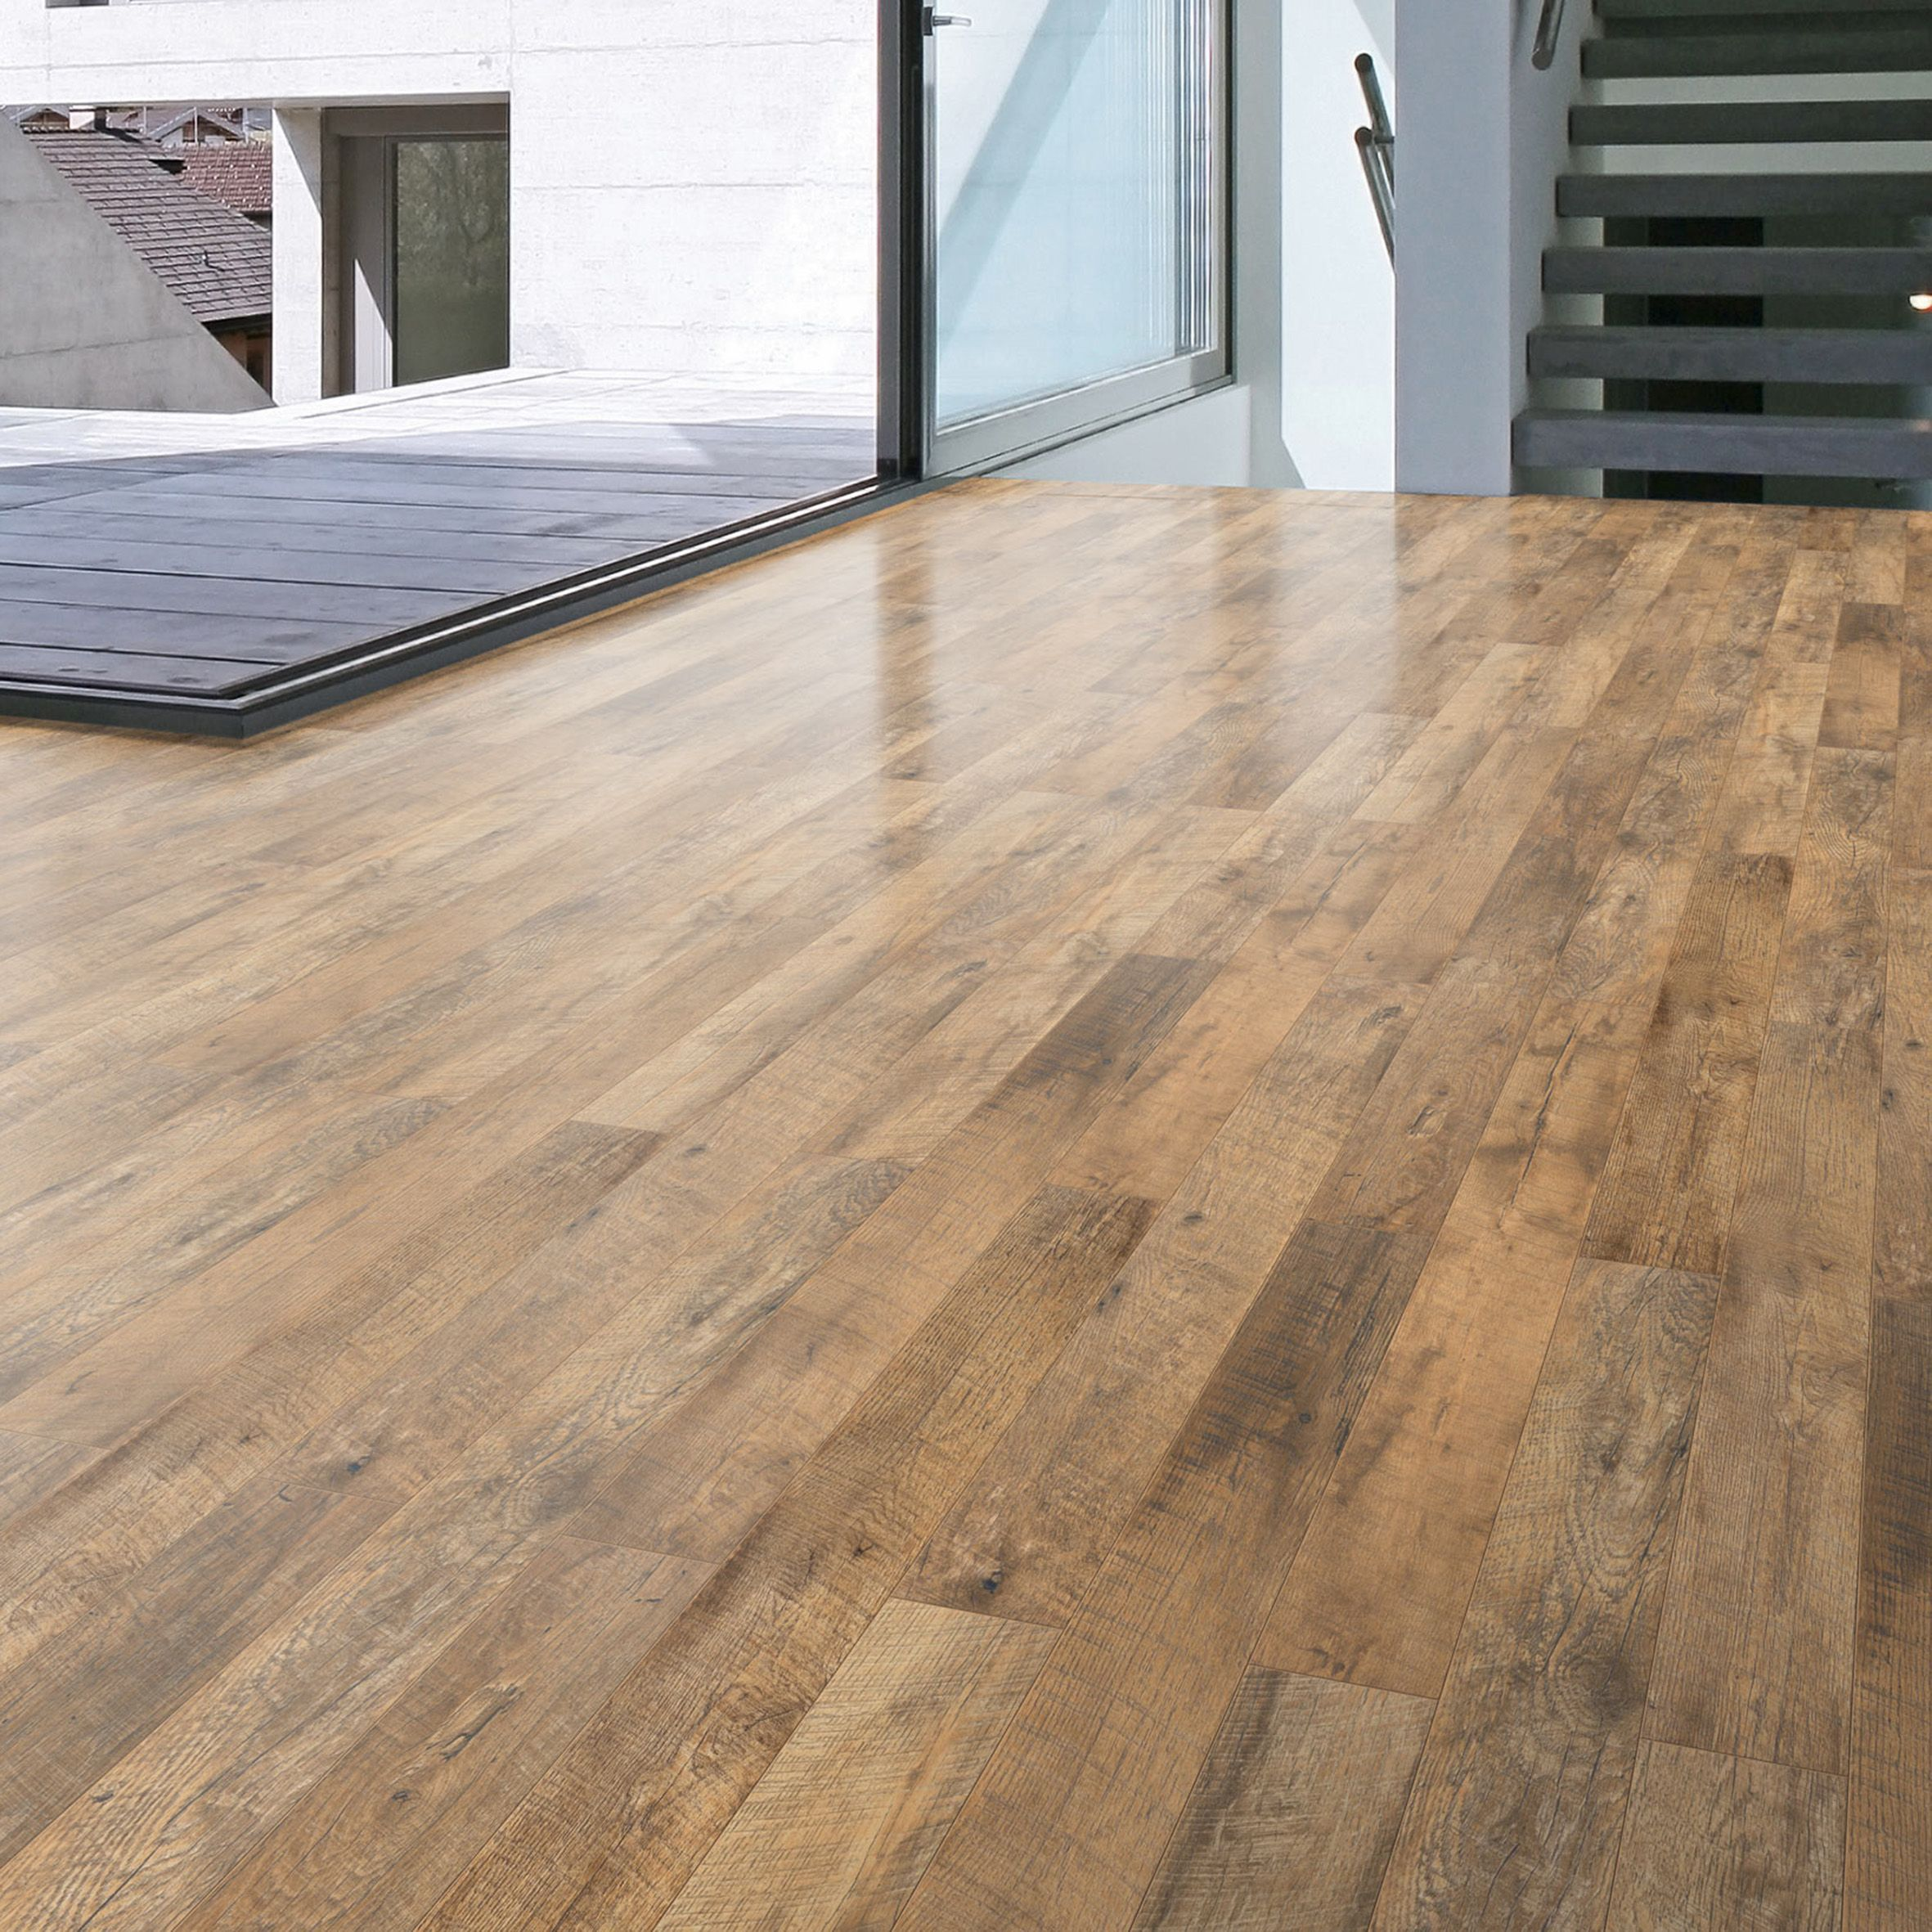 Guarcino Reclaimed Oak Effect Laminate Flooring 1 64 M² Pack Departments Diy At B Q